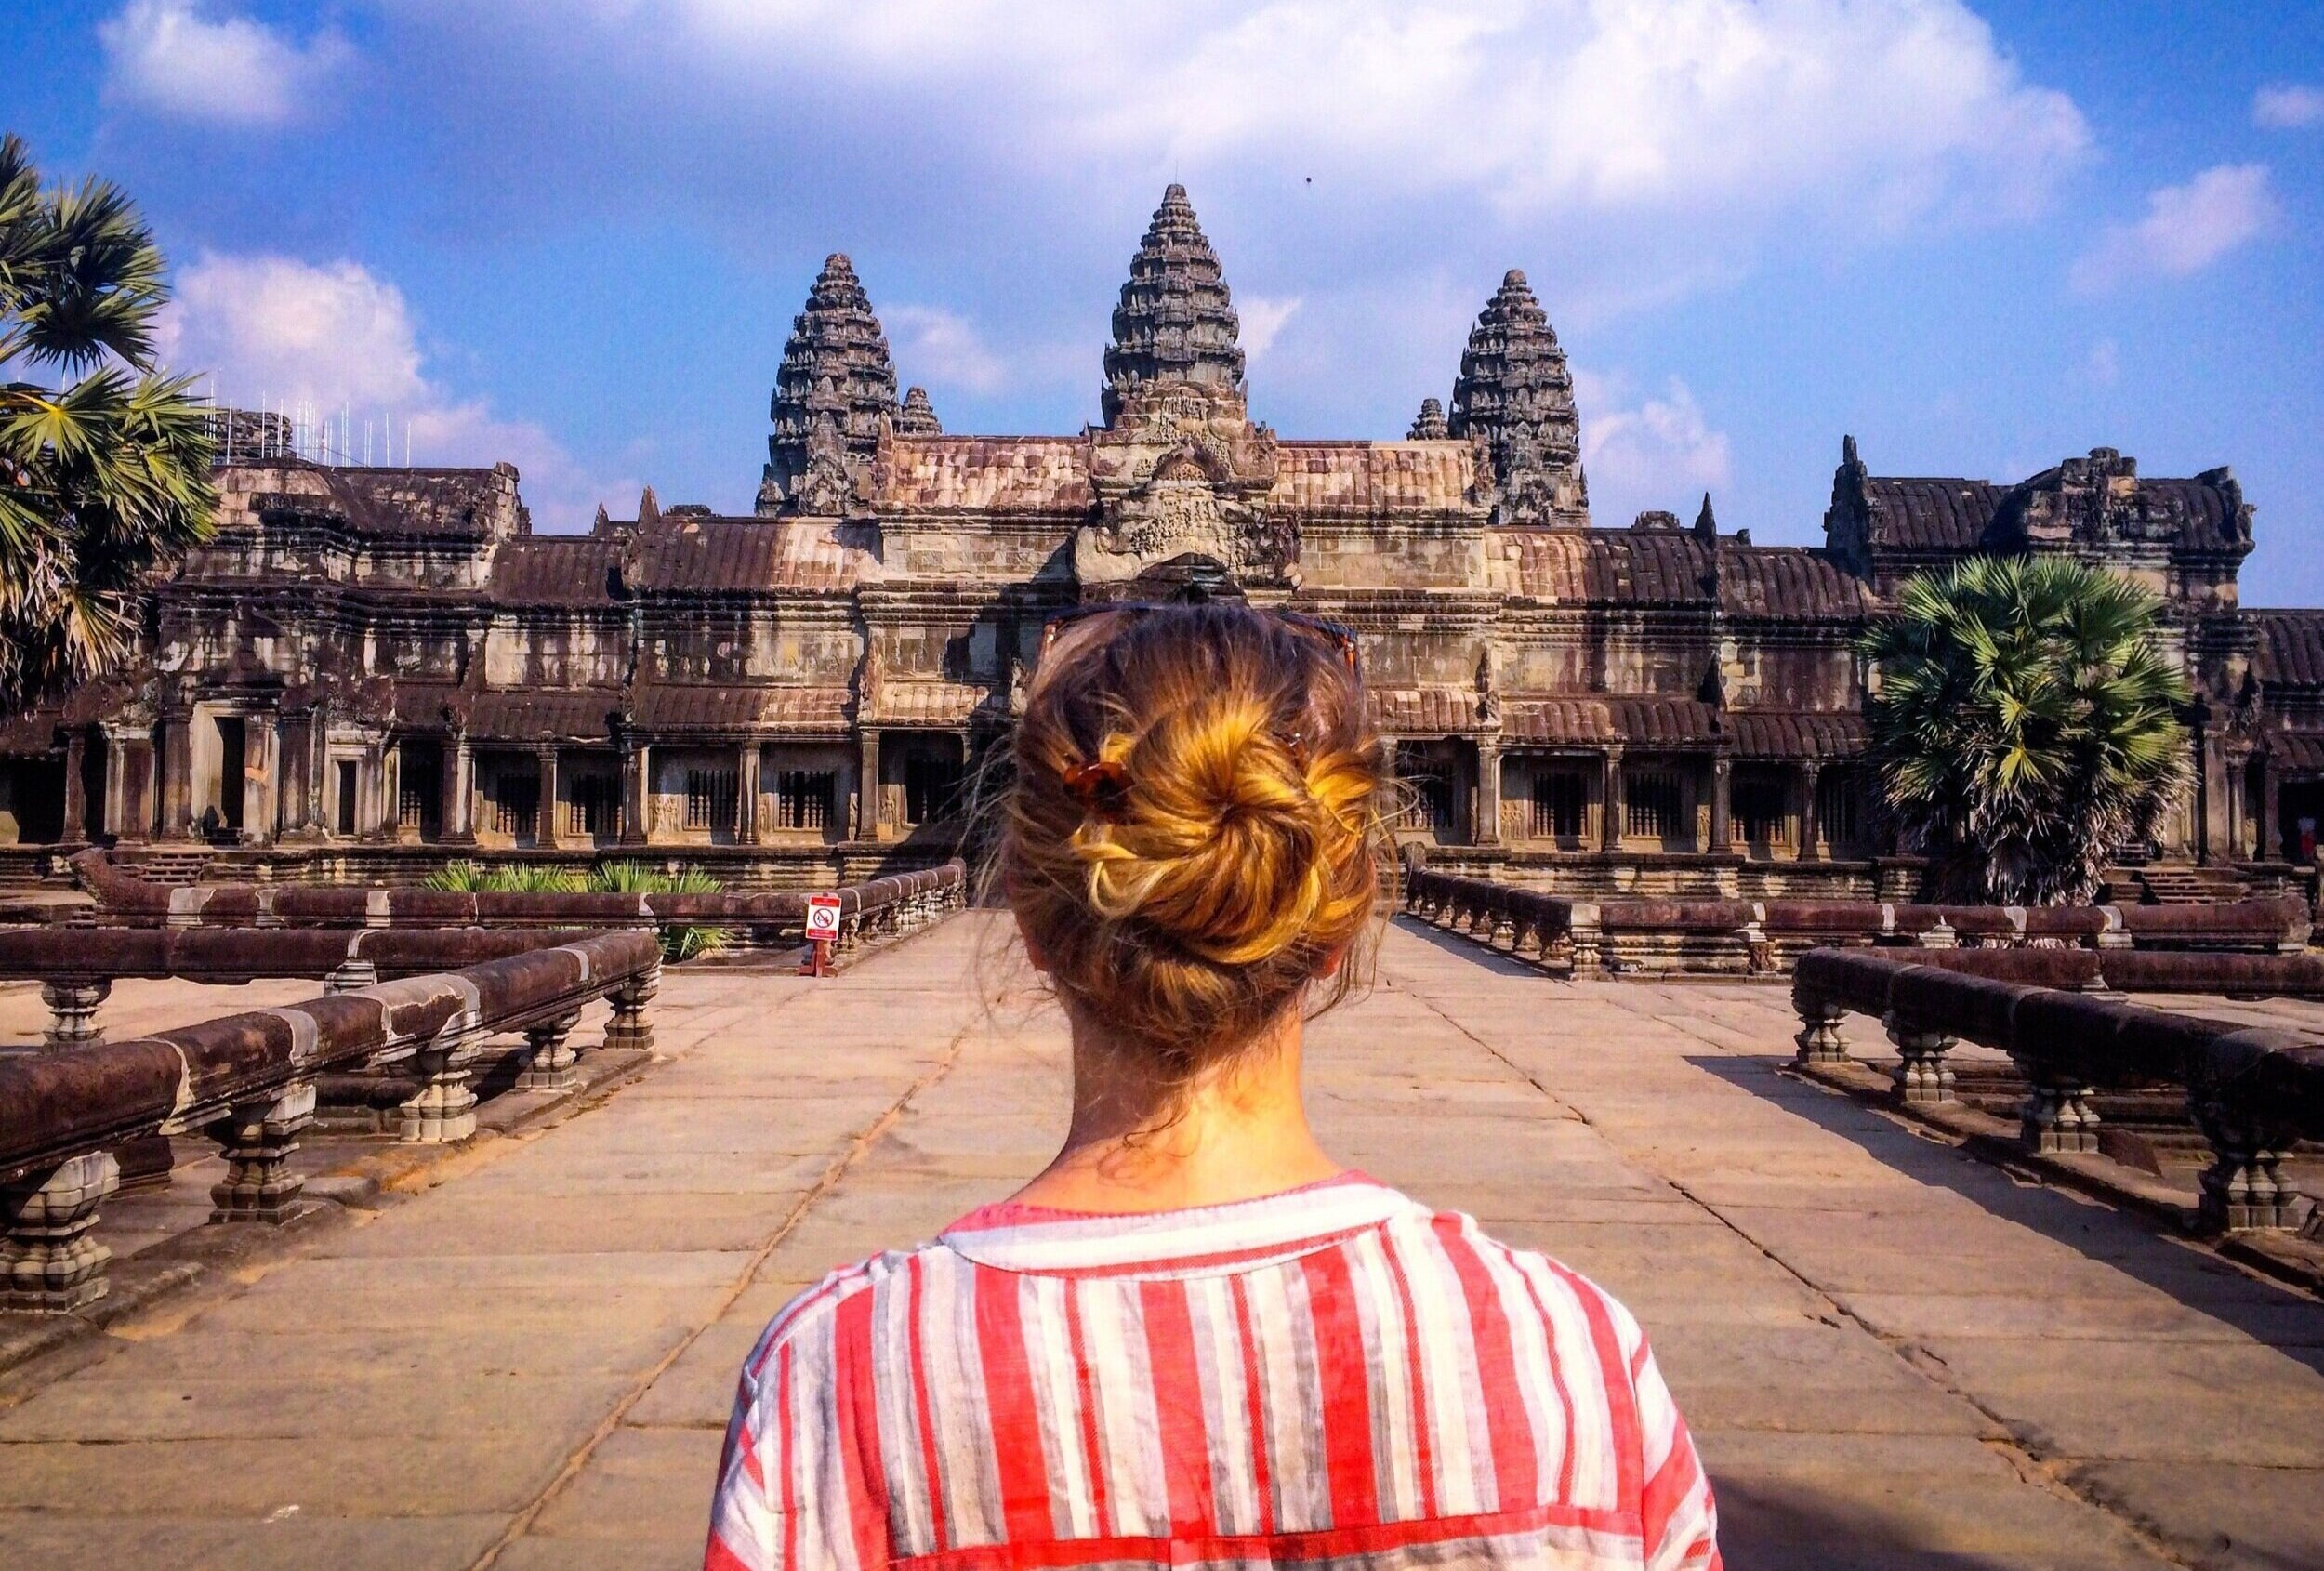 With us you will explore the world! - Unique destinations, coding, free time for swimming, diving, boating and many more activities. Live the life of a digital nomad. Change your life and be part of the Code Adventure!Find out more about who we are and what CodeAdventures Cambodia is all about.